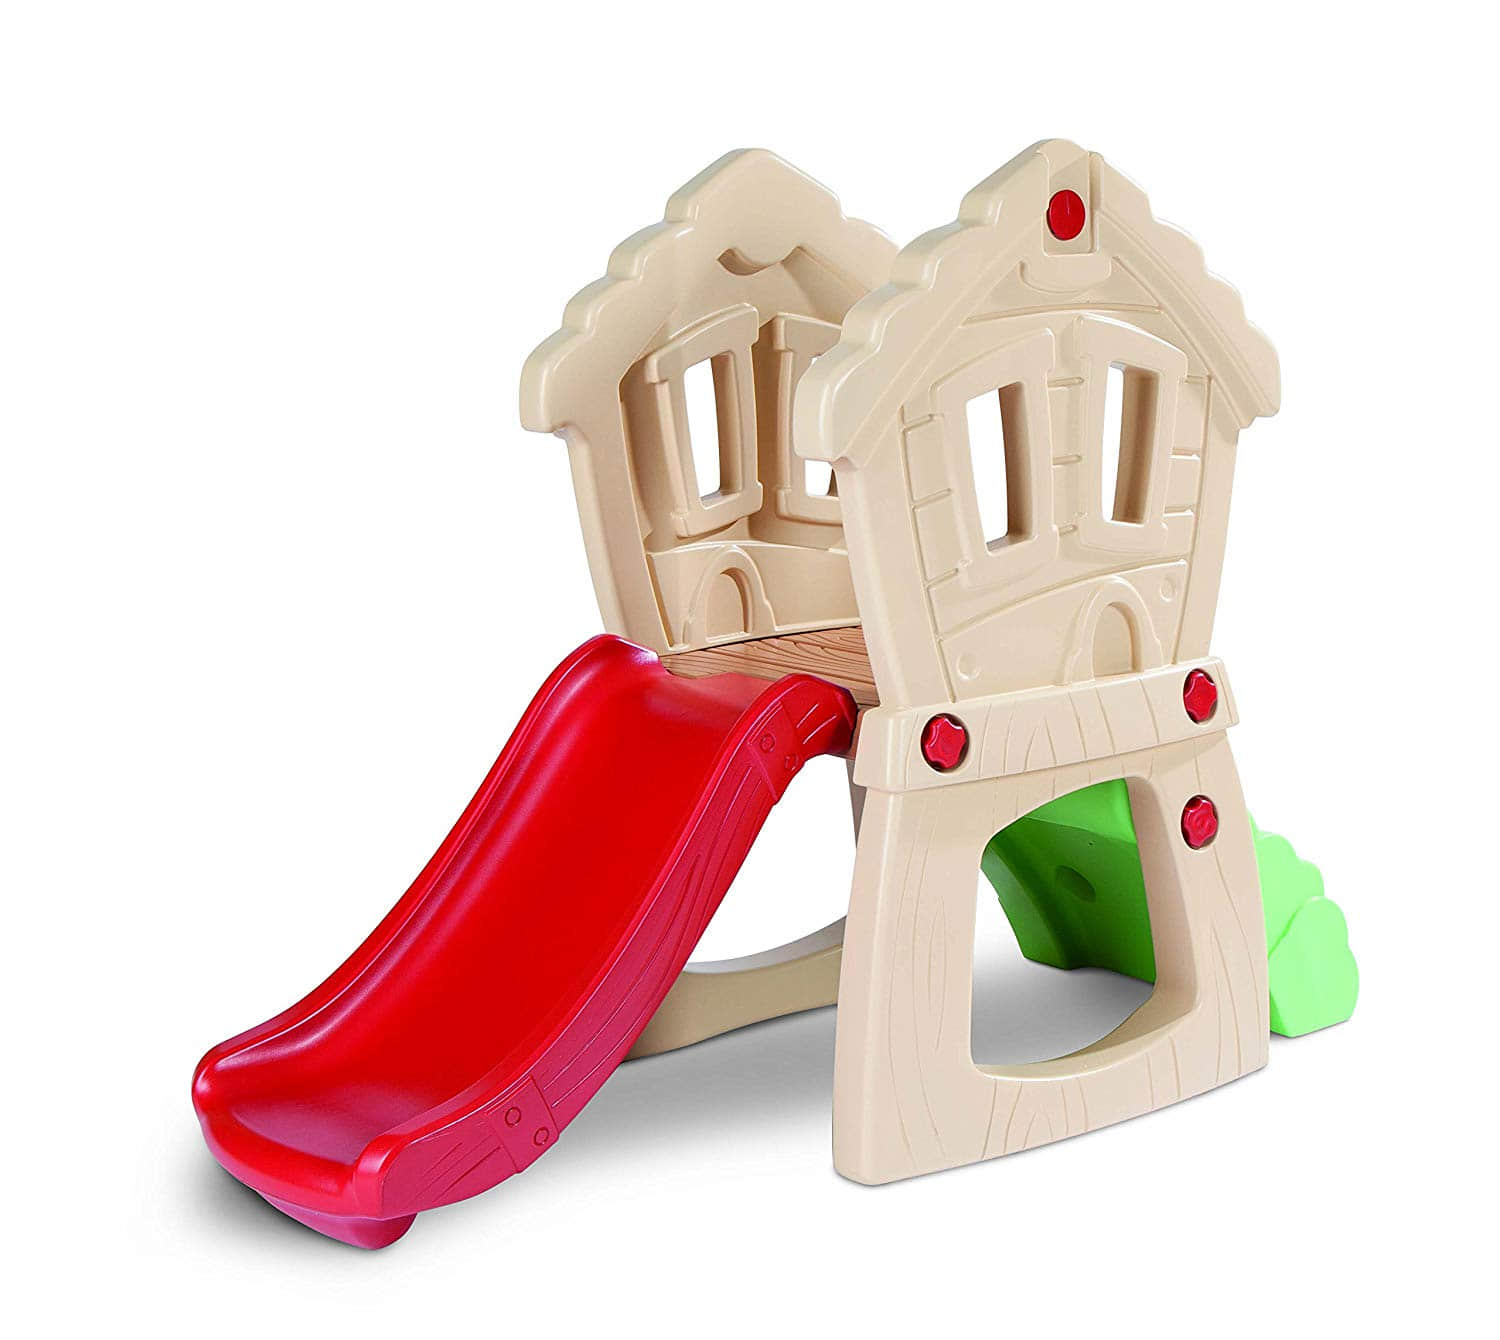 LittleTikesHideandSeekClimber indoor slide